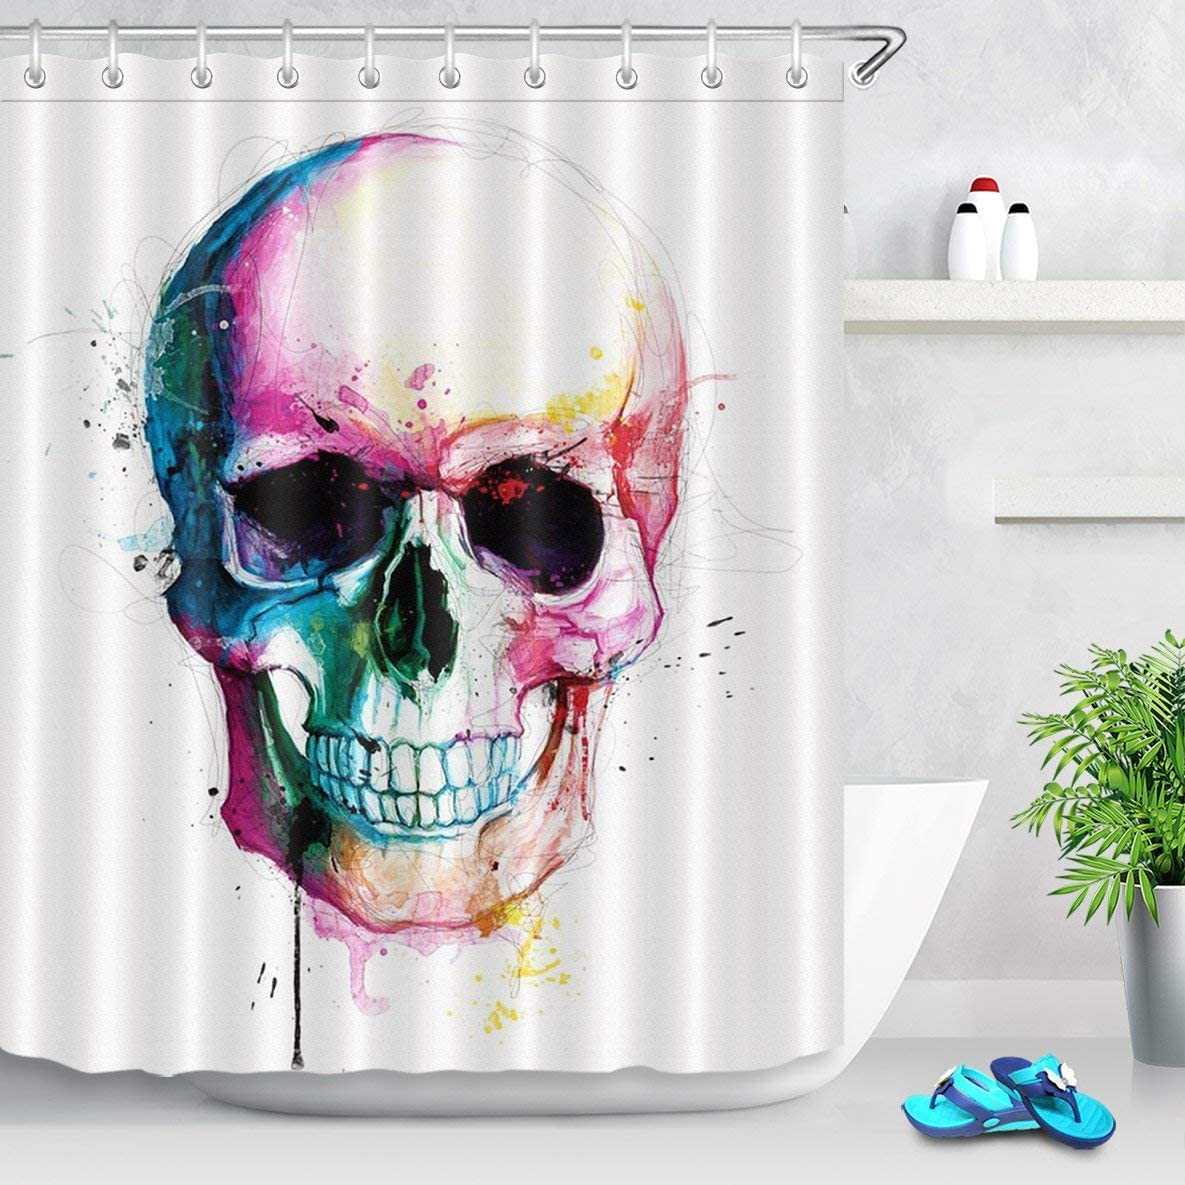 LB Day of the Dead Shower Curtain Set Halloween Sugar Skull Skeleton Scary Eyes Colorful Mexican Dia de Los Muertos Shower Curtains for Bathroom Decor with Hooks 60x72 inch Waterproof Polyester Fabric